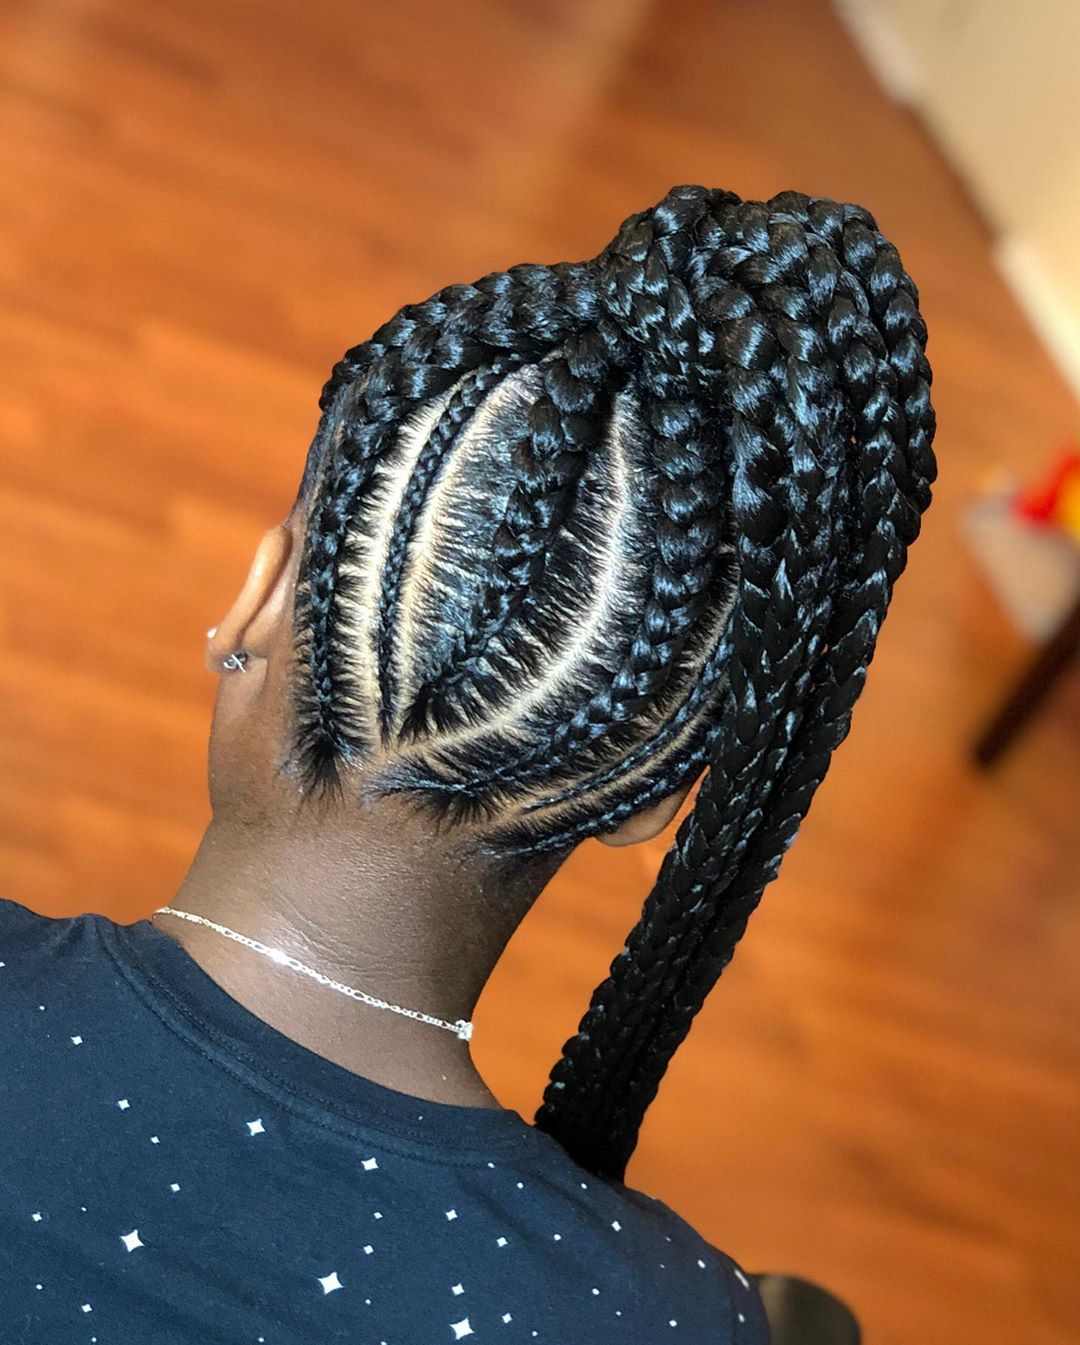 20 Best Cornrow Braid Hairstyles For Women In 2020 Styles 2d